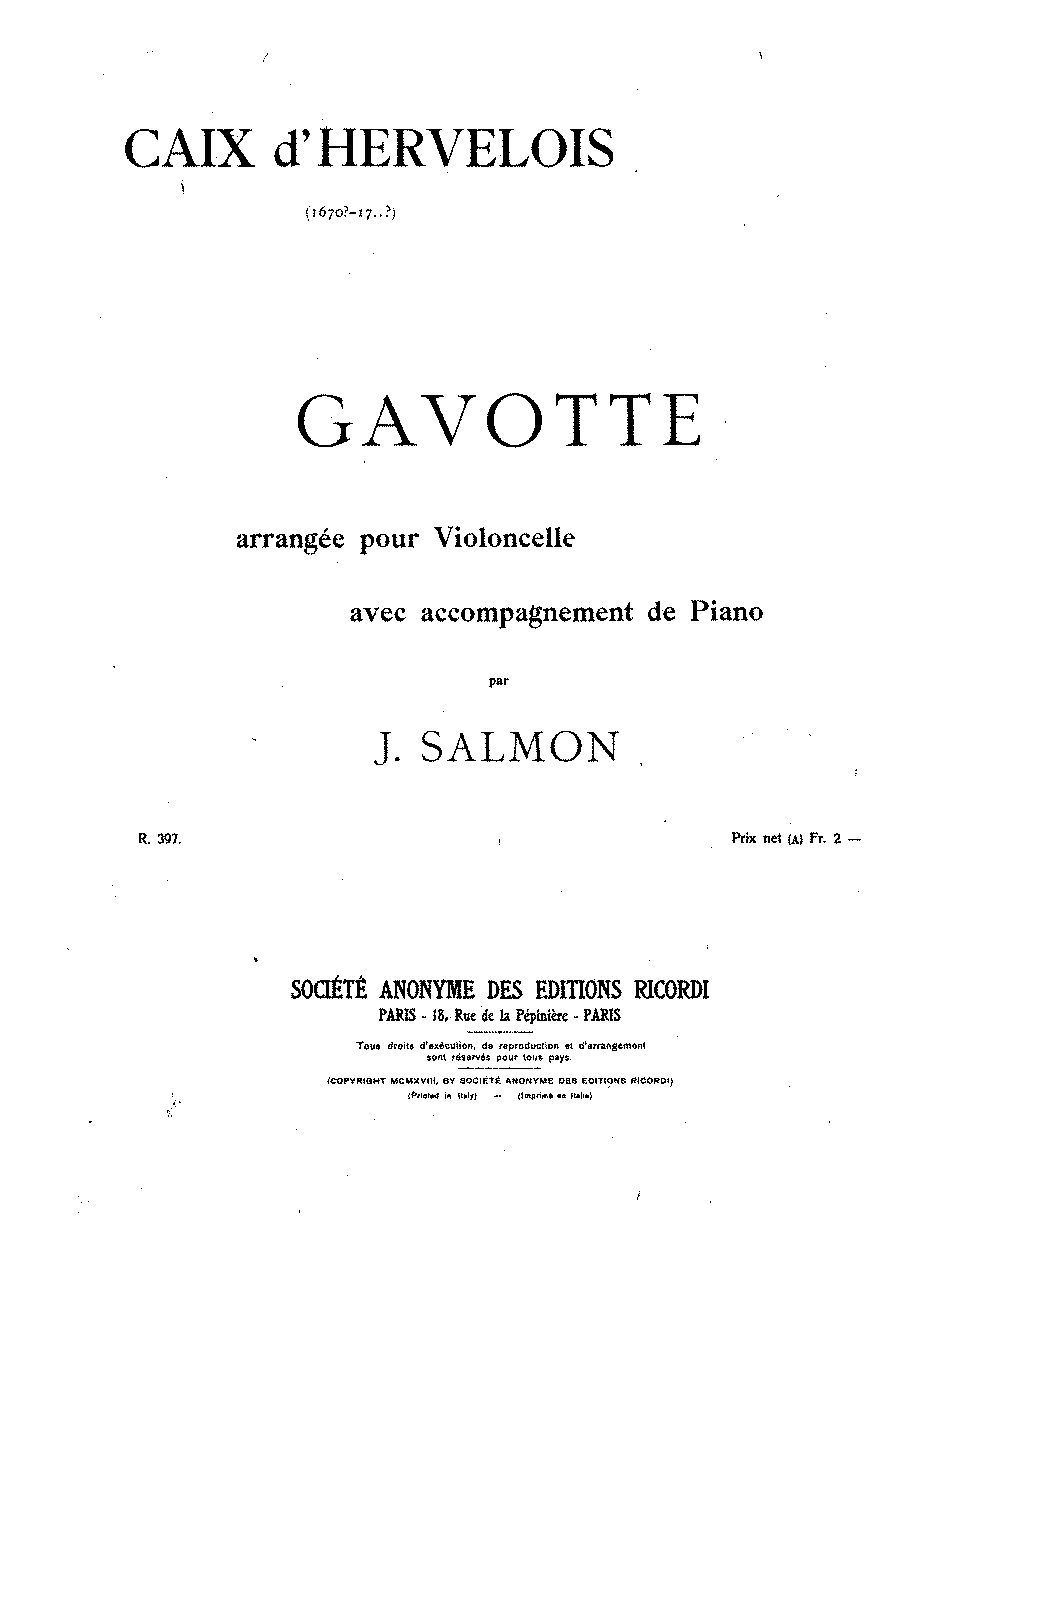 PMLP131706-Caix d'Hervelois - Gavotte in A minor (Salmon) for cello and piano pno.pdf